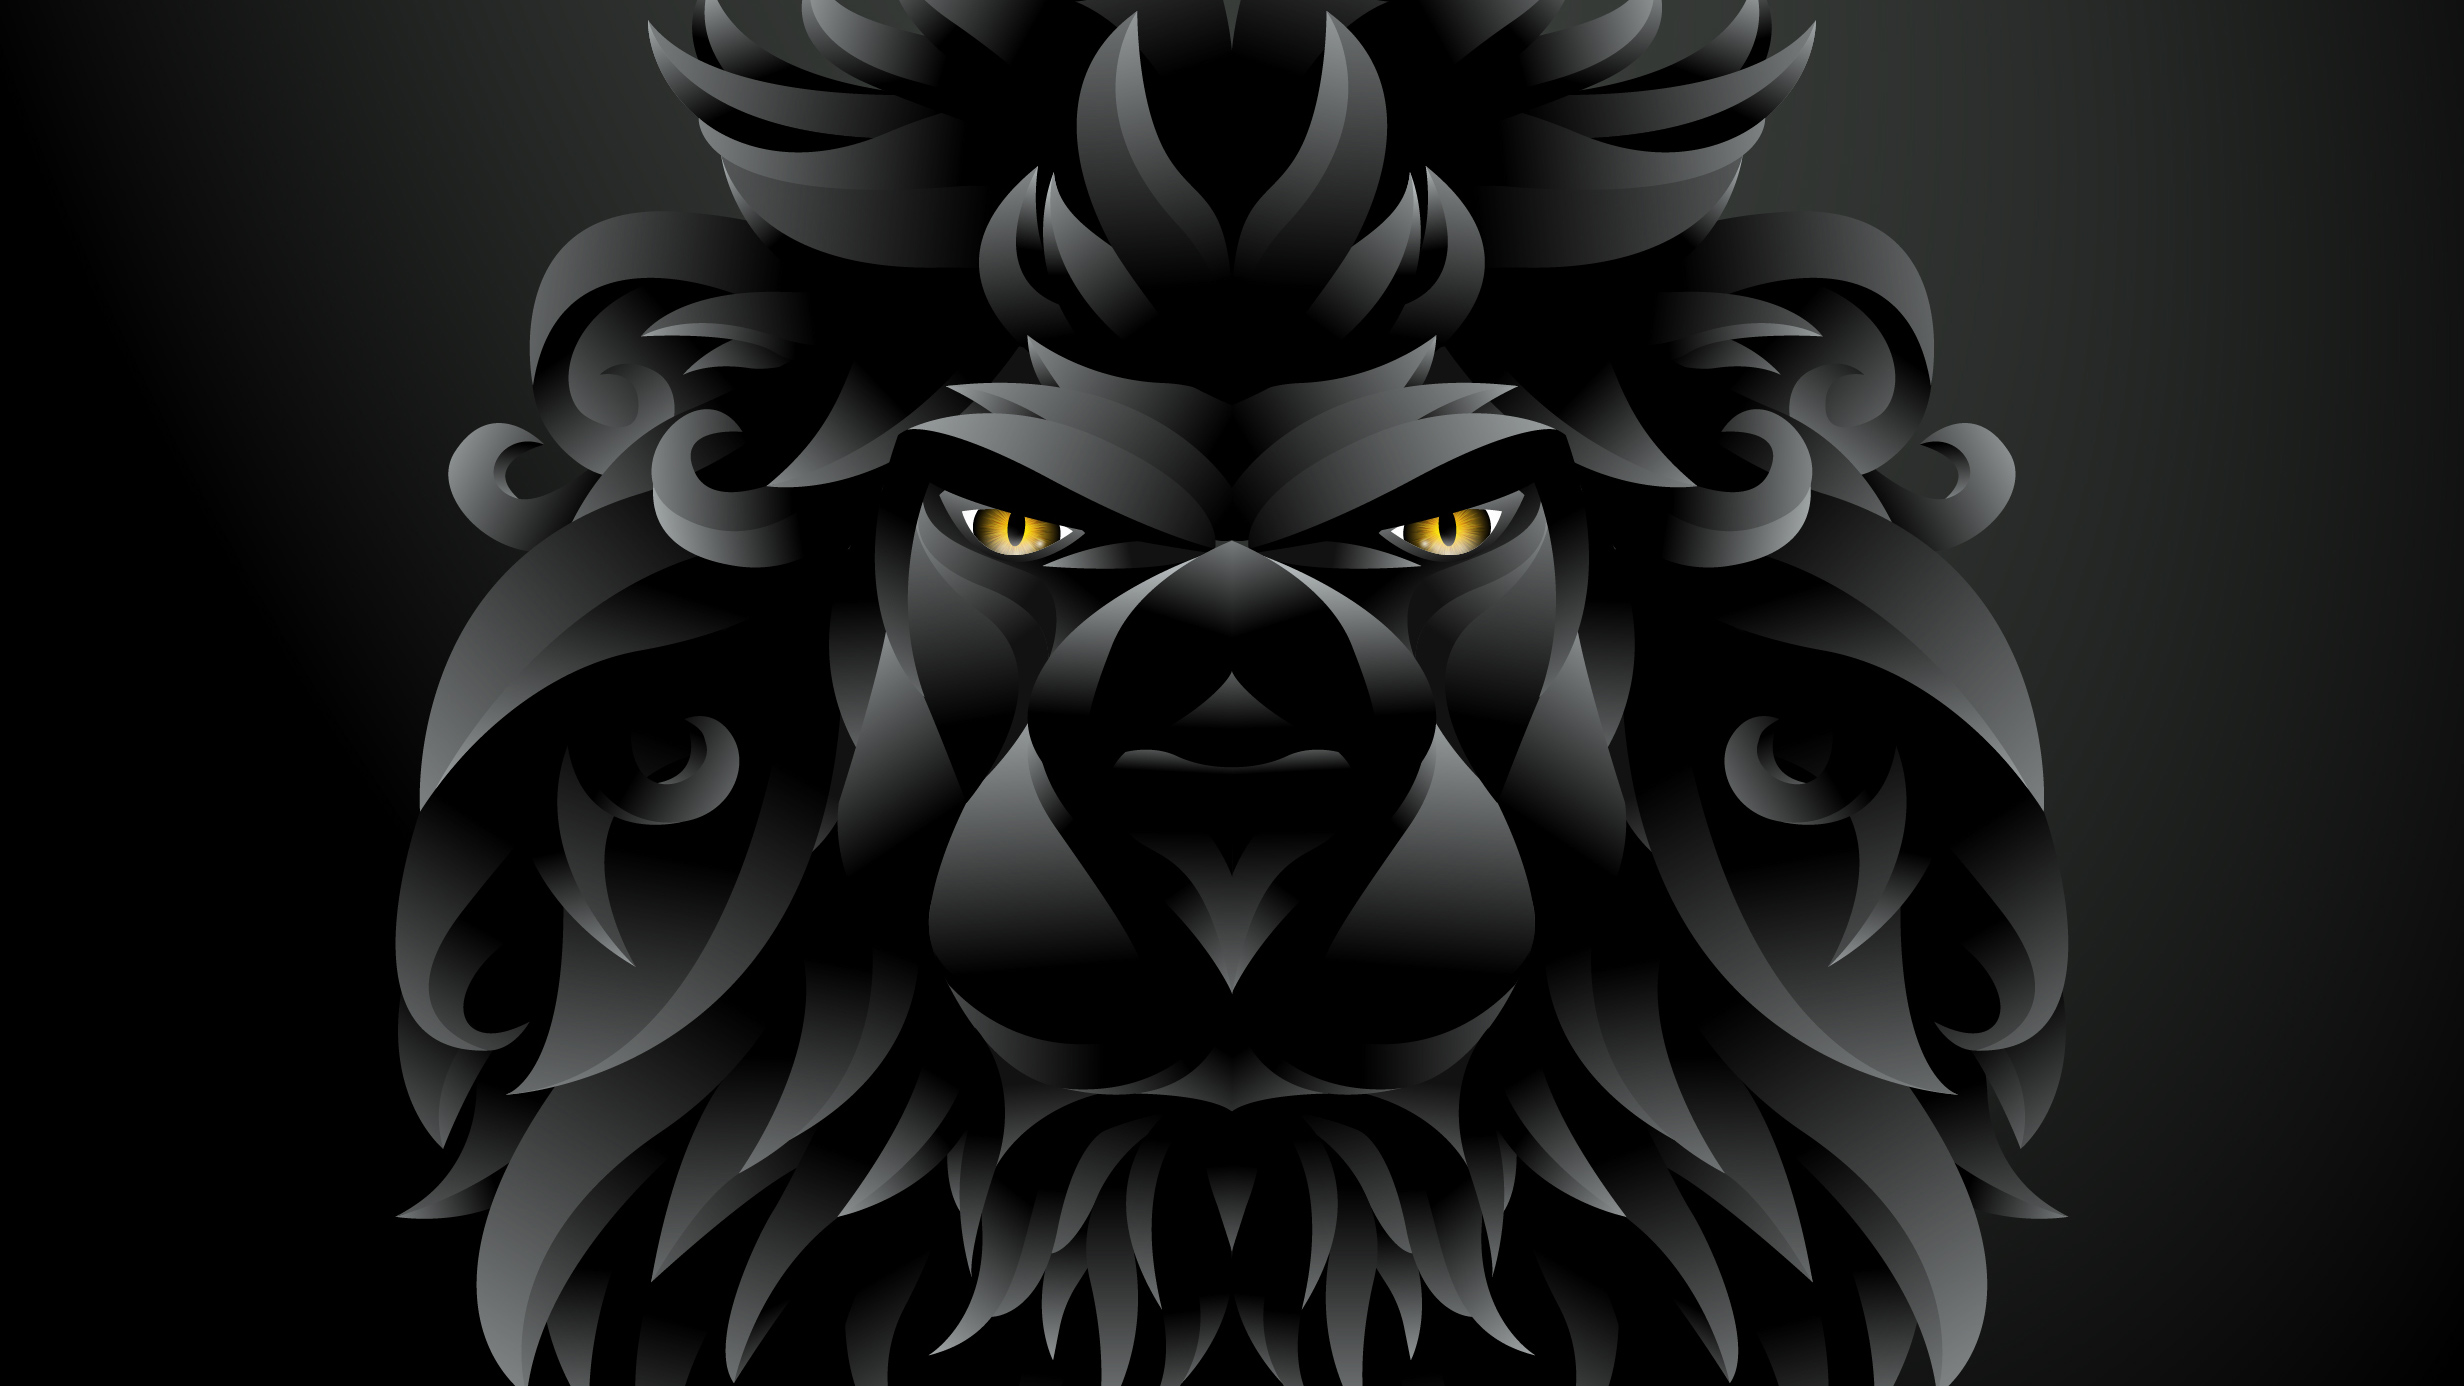 Dark Black Lion Illustration Hd Artist 4k Wallpapers Images